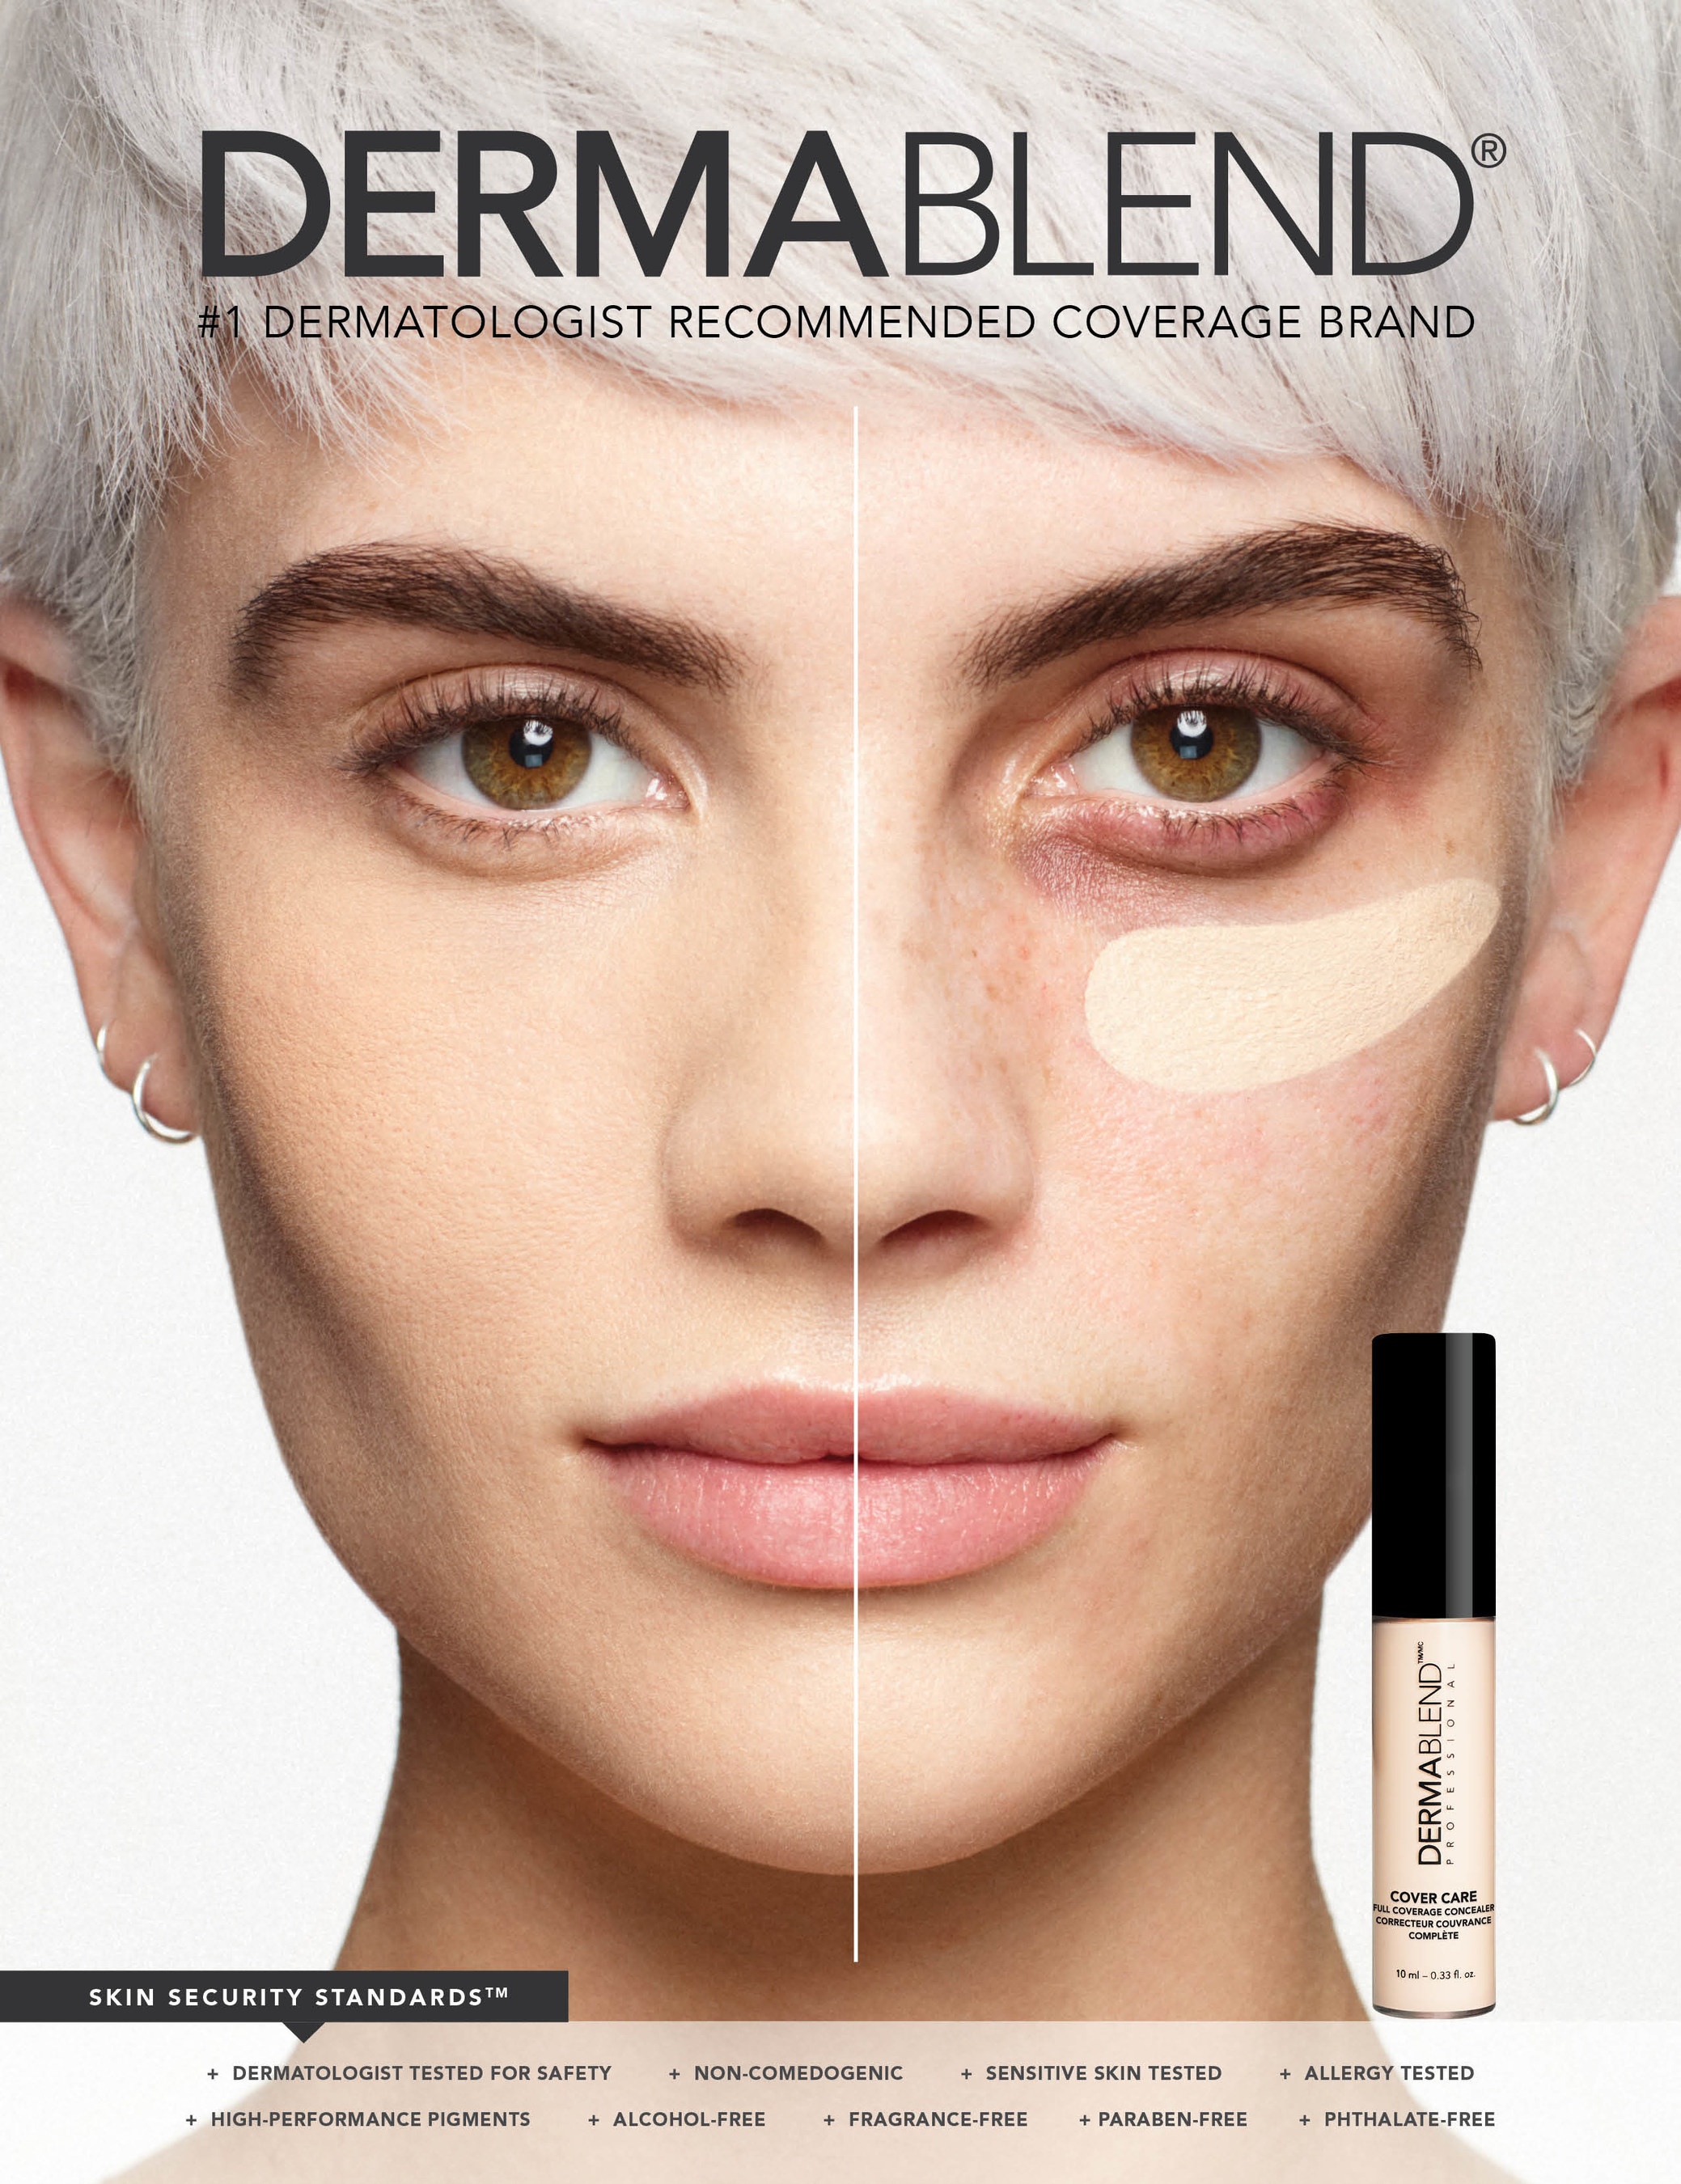 Cover Care Full Coverage Concealer by dermablend #3